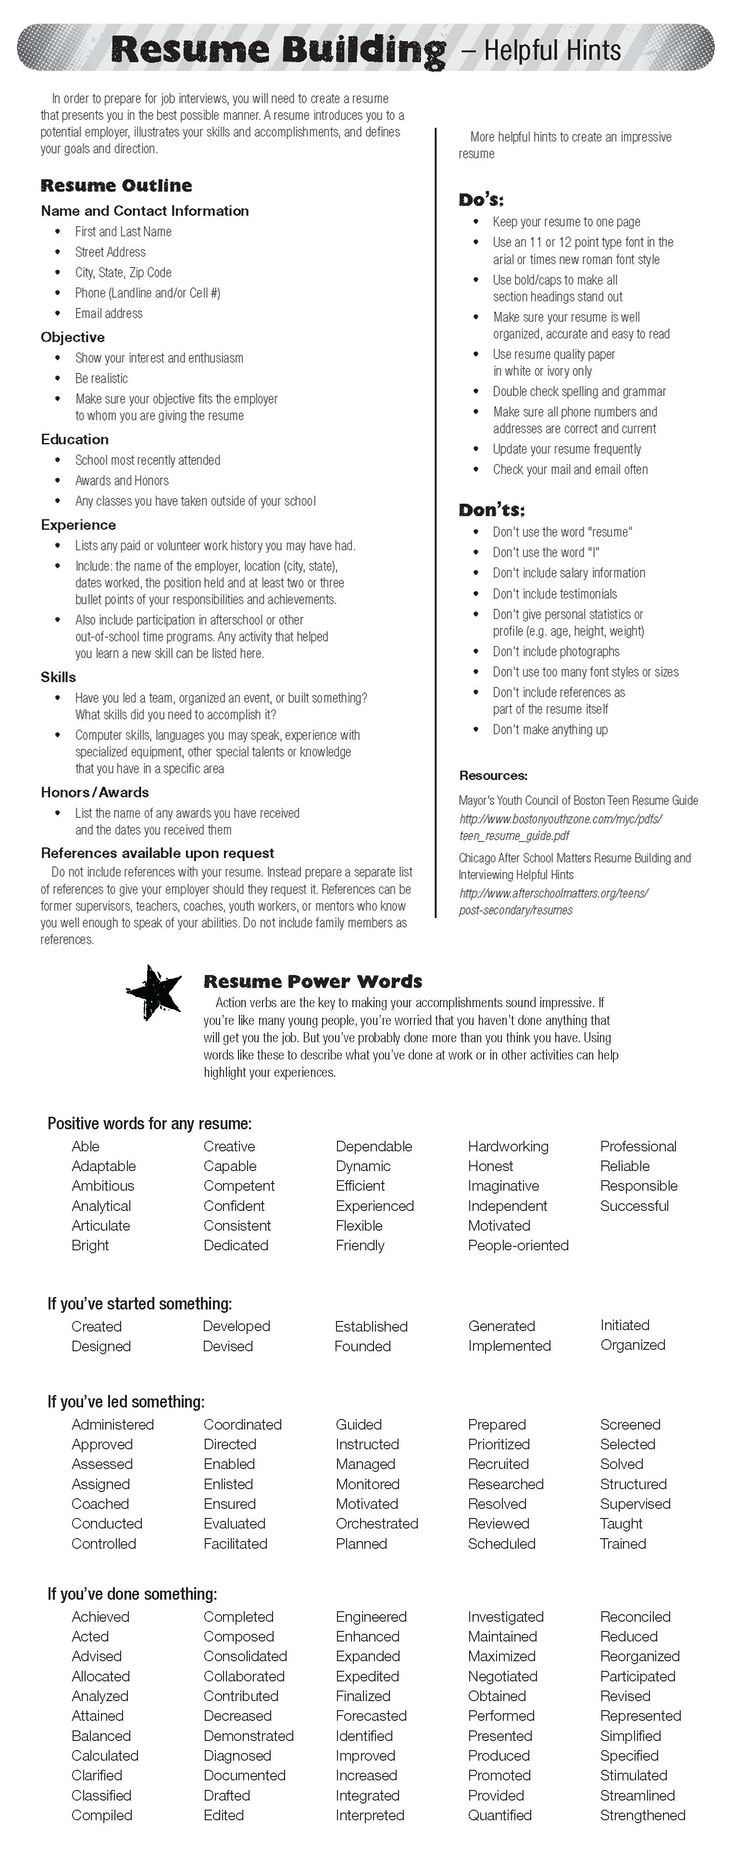 Opposenewapstandardsus  Pretty  Ideas About Resume On Pinterest  Cv Format Resume Cv And  With Licious  Ideas About Resume On Pinterest  Cv Format Resume Cv And Resume Templates With Appealing Resume Databases Also Free Resume Samples Download In Addition Civil Engineer Resume Sample And Phlebotomy Technician Resume As Well As Reference Page For Resume Template Additionally Usa Jobs Resume Sample From Pinterestcom With Opposenewapstandardsus  Licious  Ideas About Resume On Pinterest  Cv Format Resume Cv And  With Appealing  Ideas About Resume On Pinterest  Cv Format Resume Cv And Resume Templates And Pretty Resume Databases Also Free Resume Samples Download In Addition Civil Engineer Resume Sample From Pinterestcom